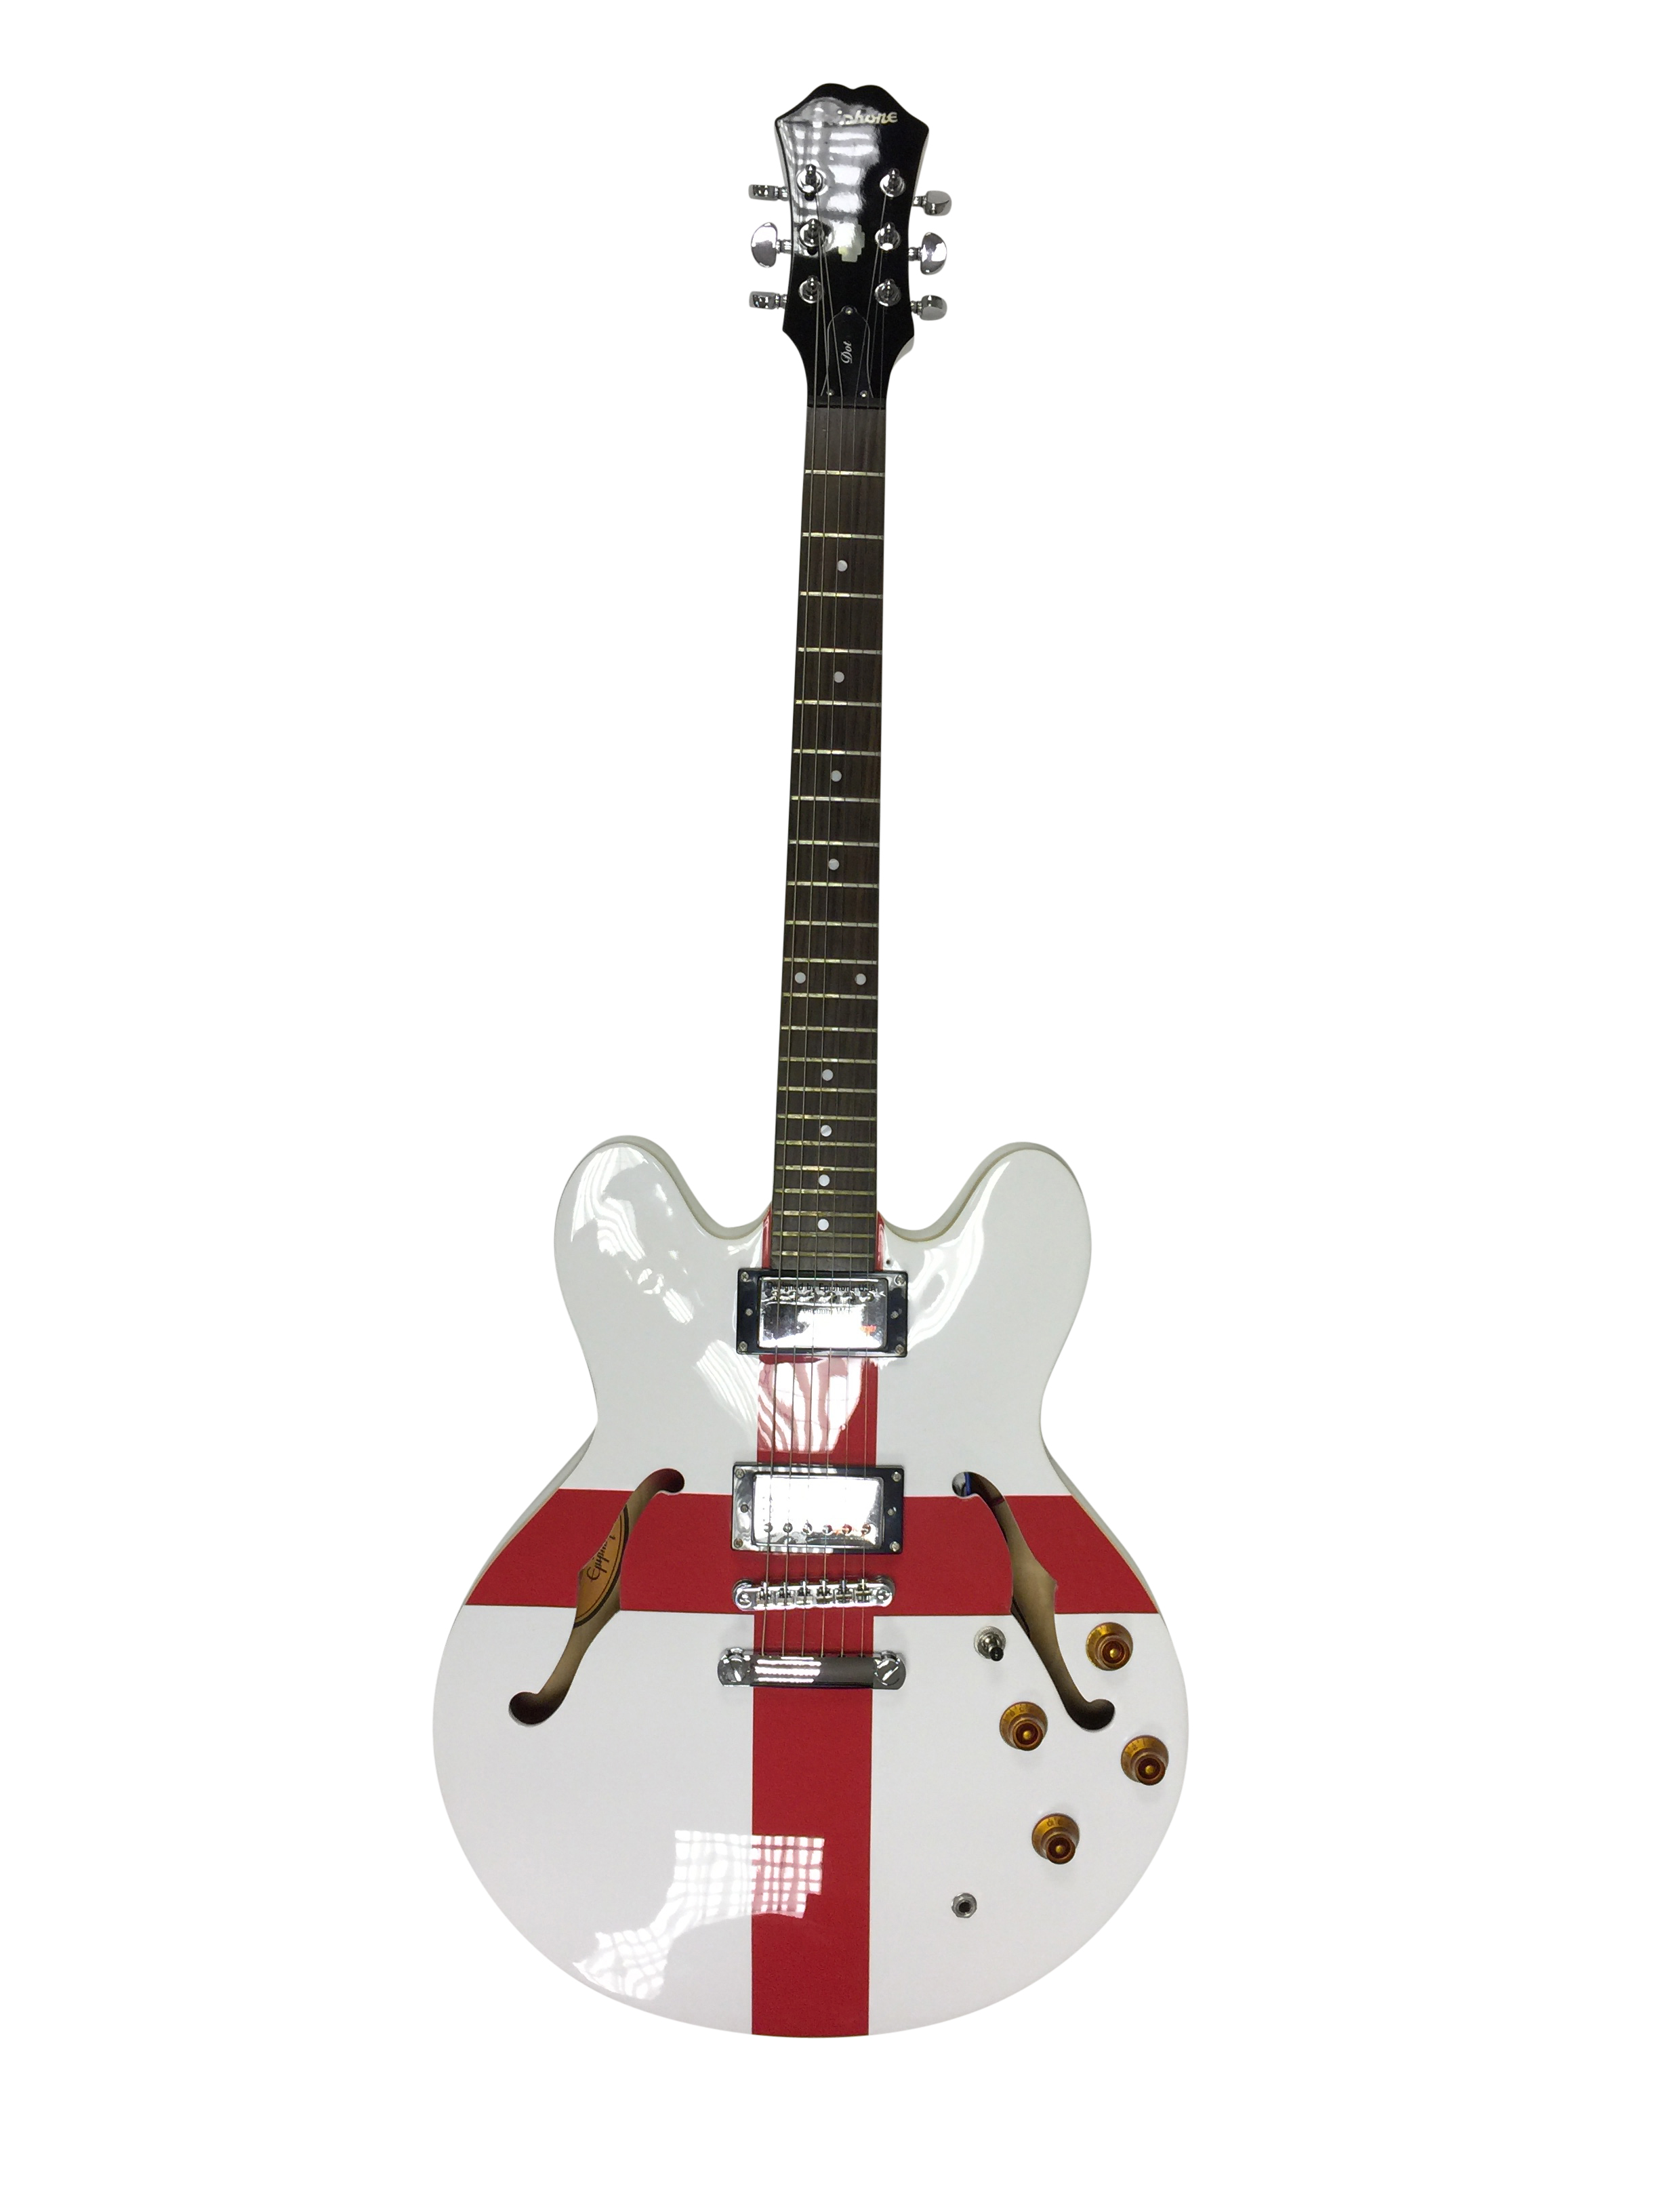 Lot 11 - EPIPHONE DOT LIMITED EDITION ELECTRIC GUITAR. A limited edition 2006 'St.